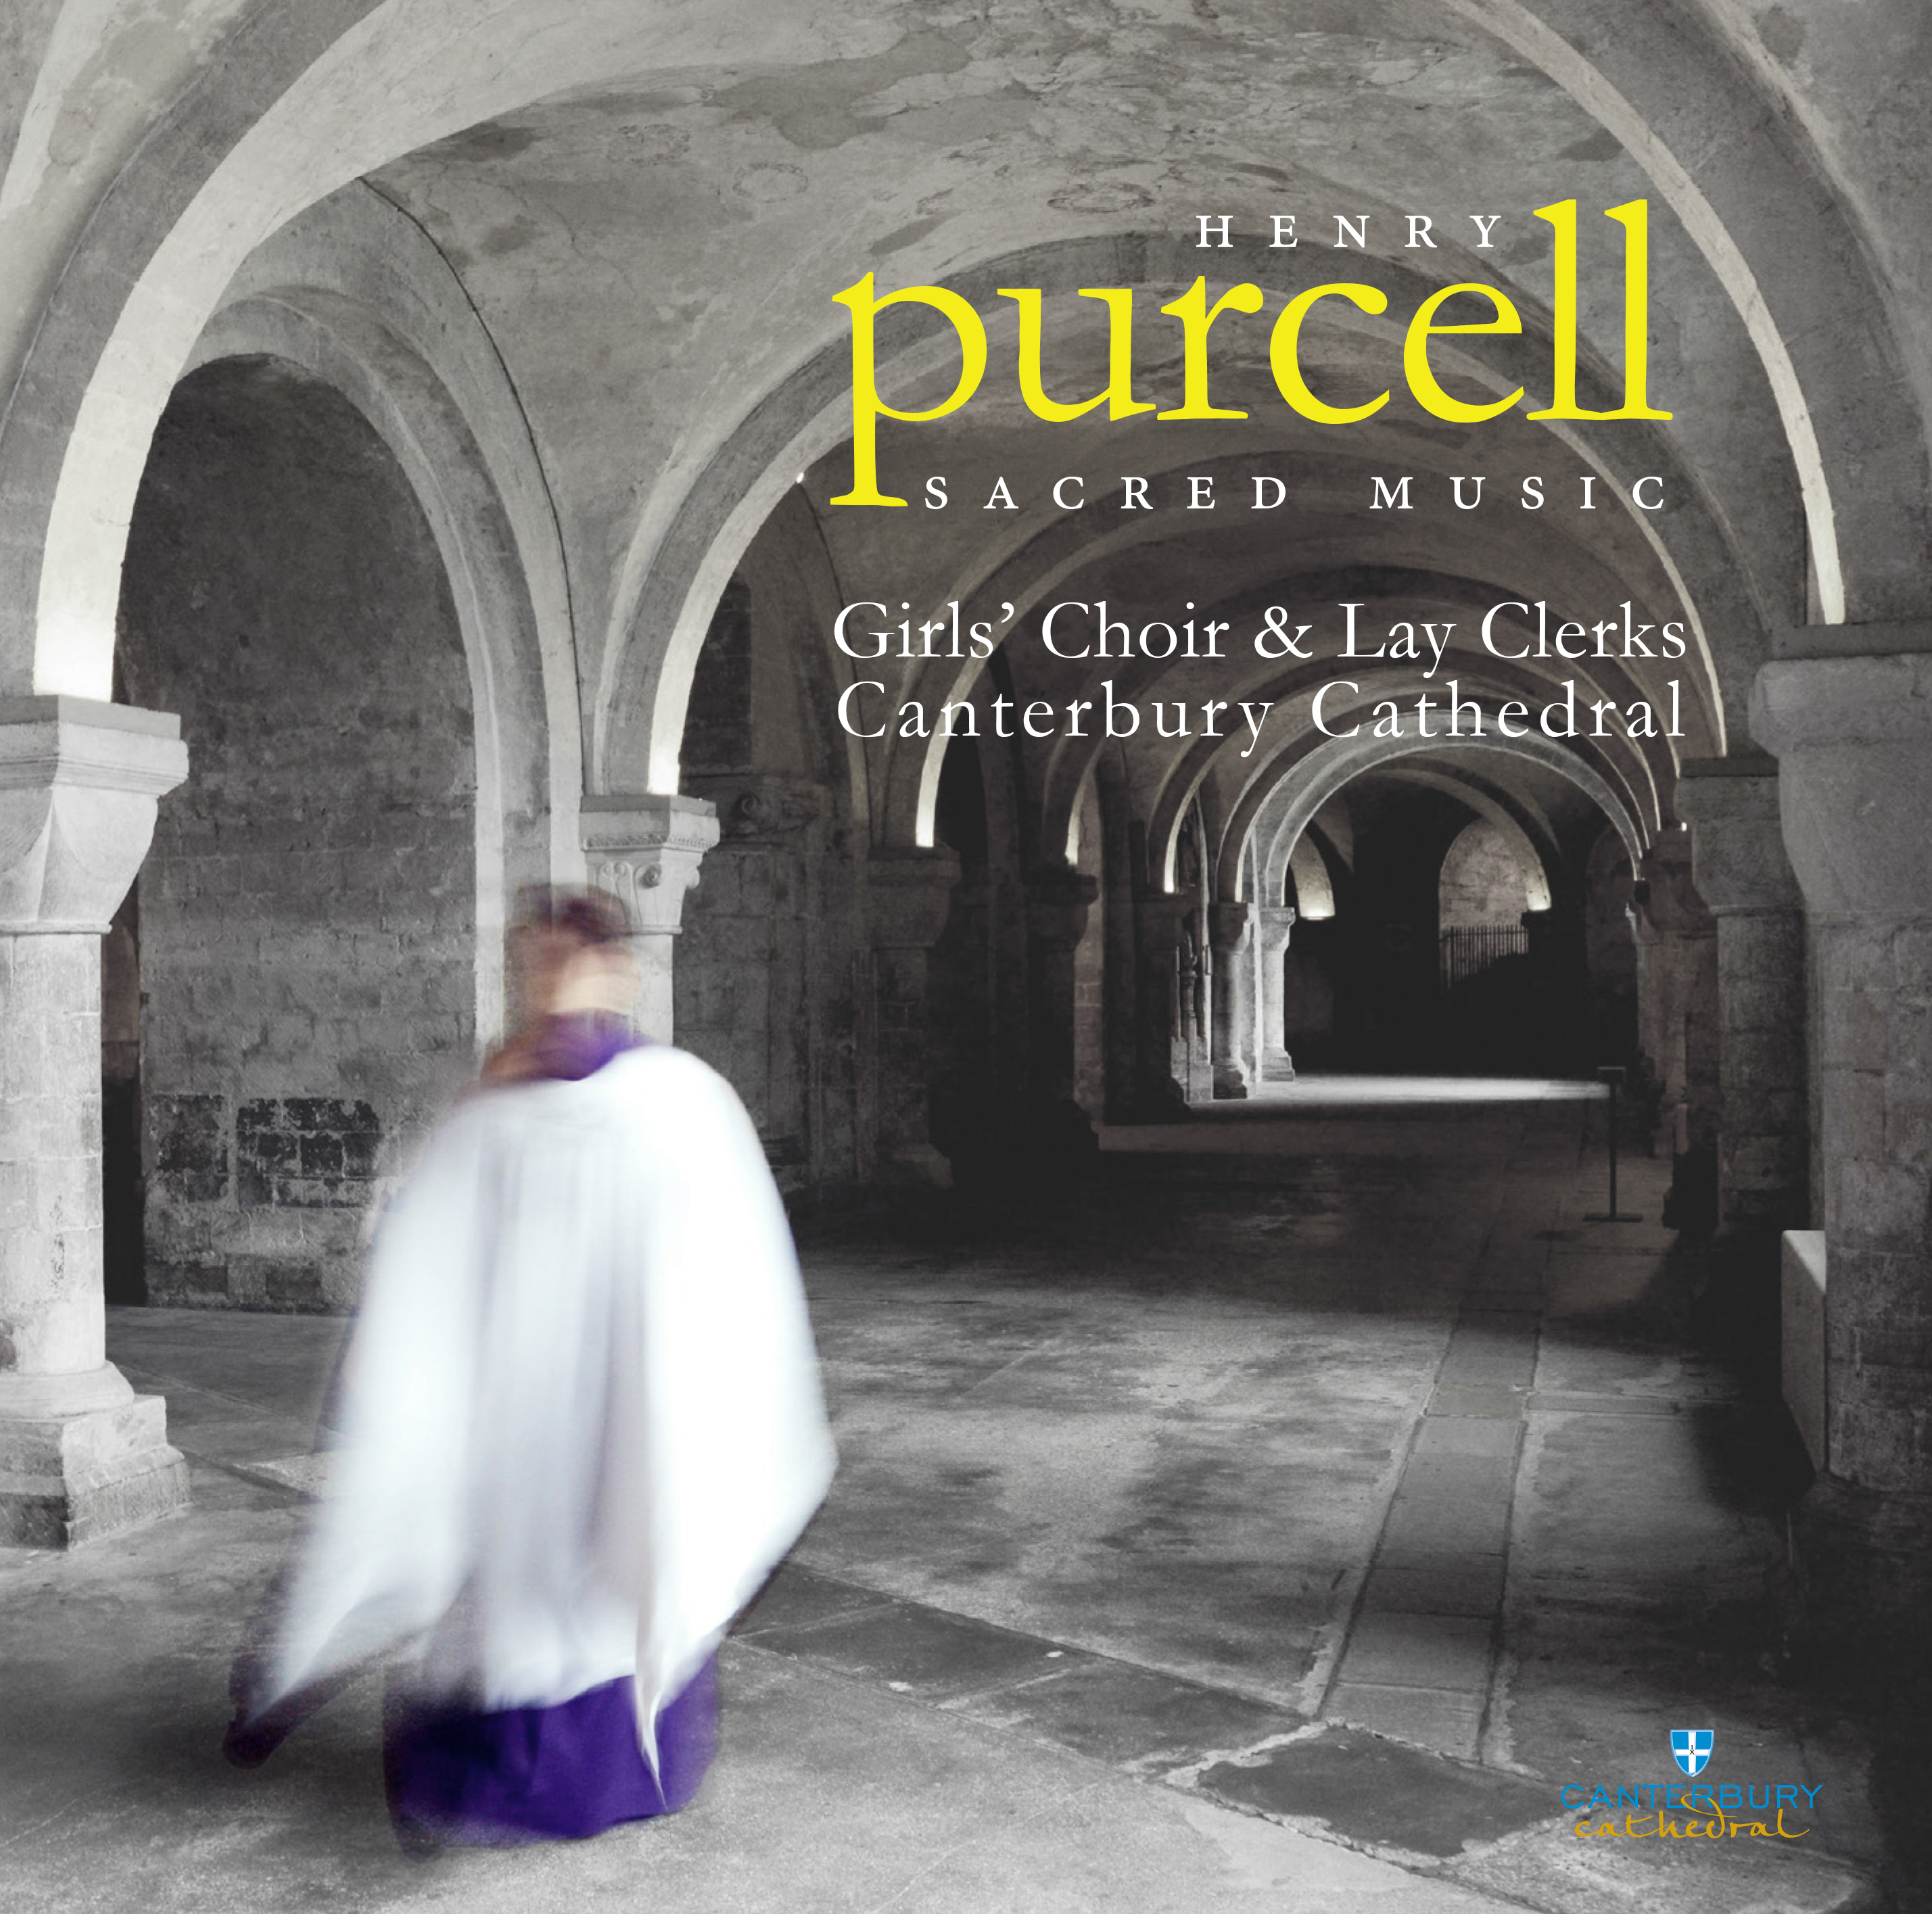 Canterbury Cathedral Girls' Choir release their debut recording.